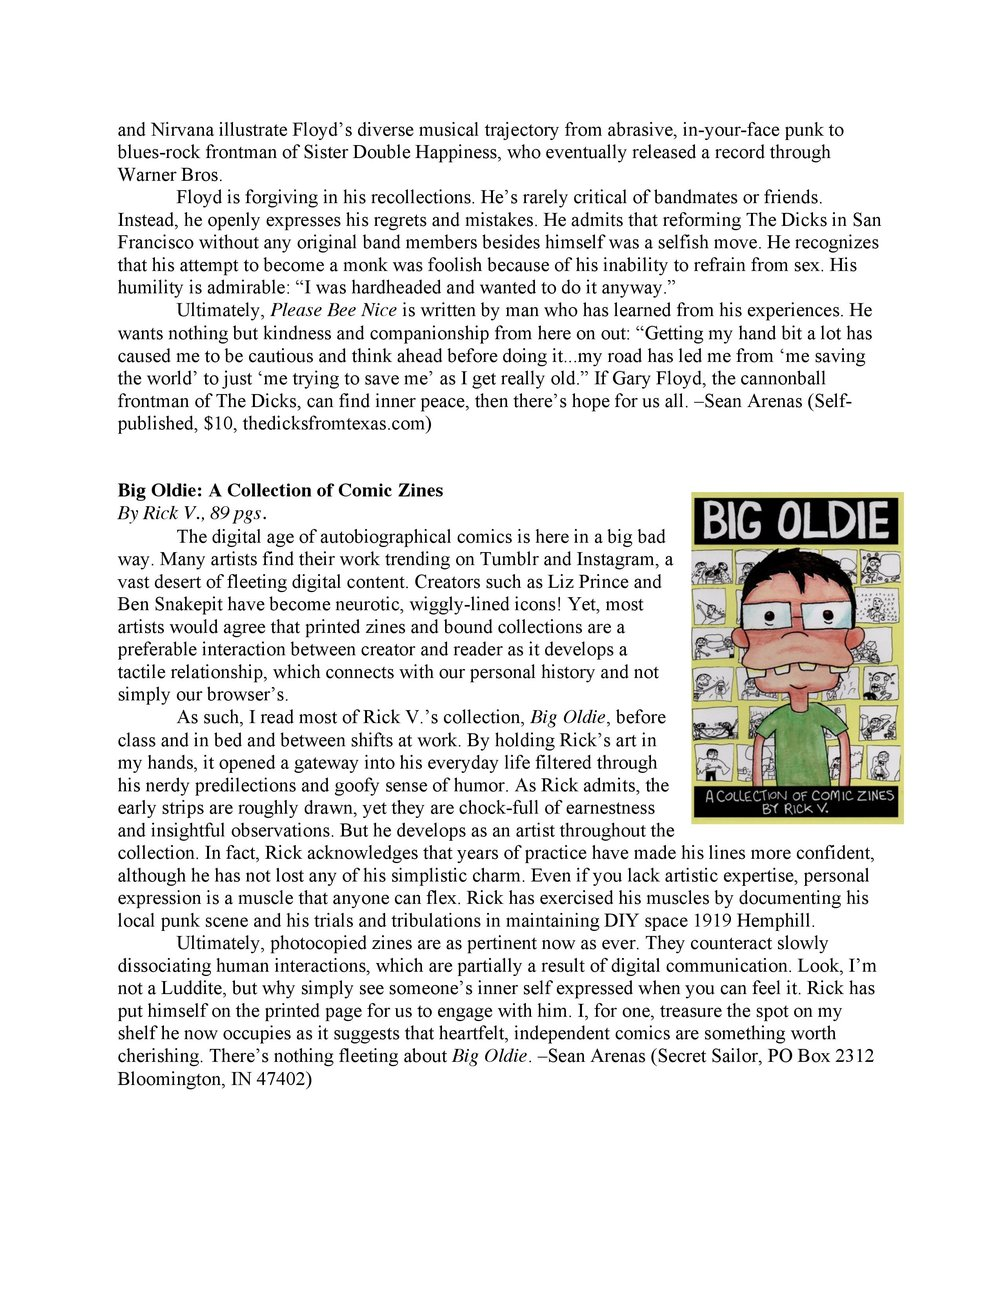 SEAN ARENAS_BOOK_WRITING SAMPLES-page-002.jpg